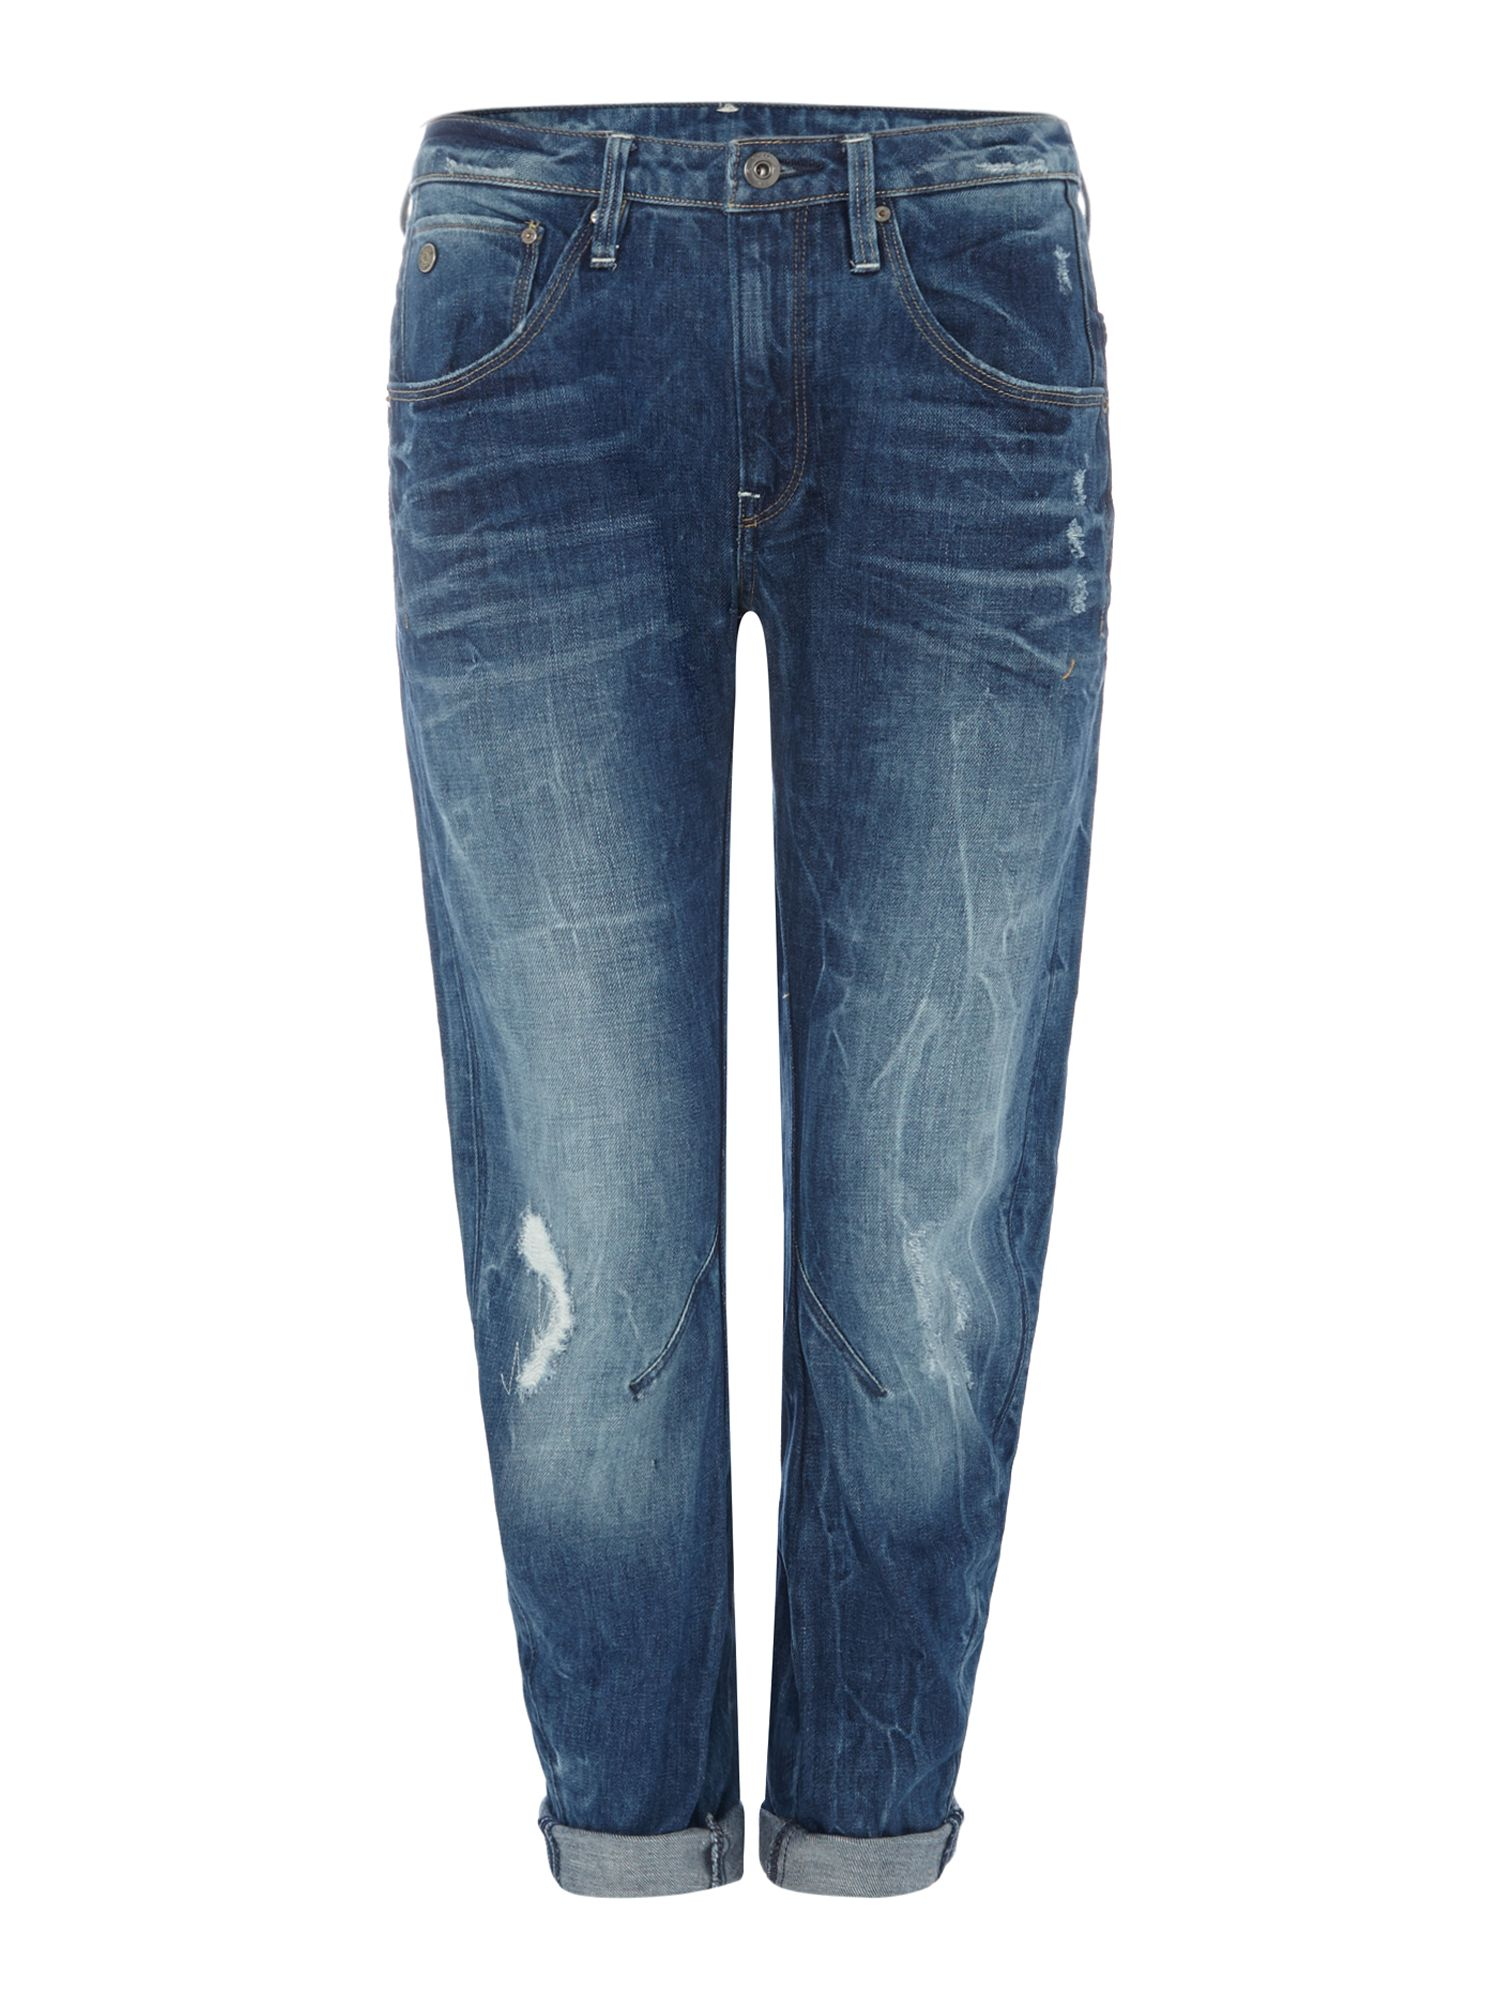 star raw arc 3d low boyfriend jean in watton denim in blue lyst. Black Bedroom Furniture Sets. Home Design Ideas